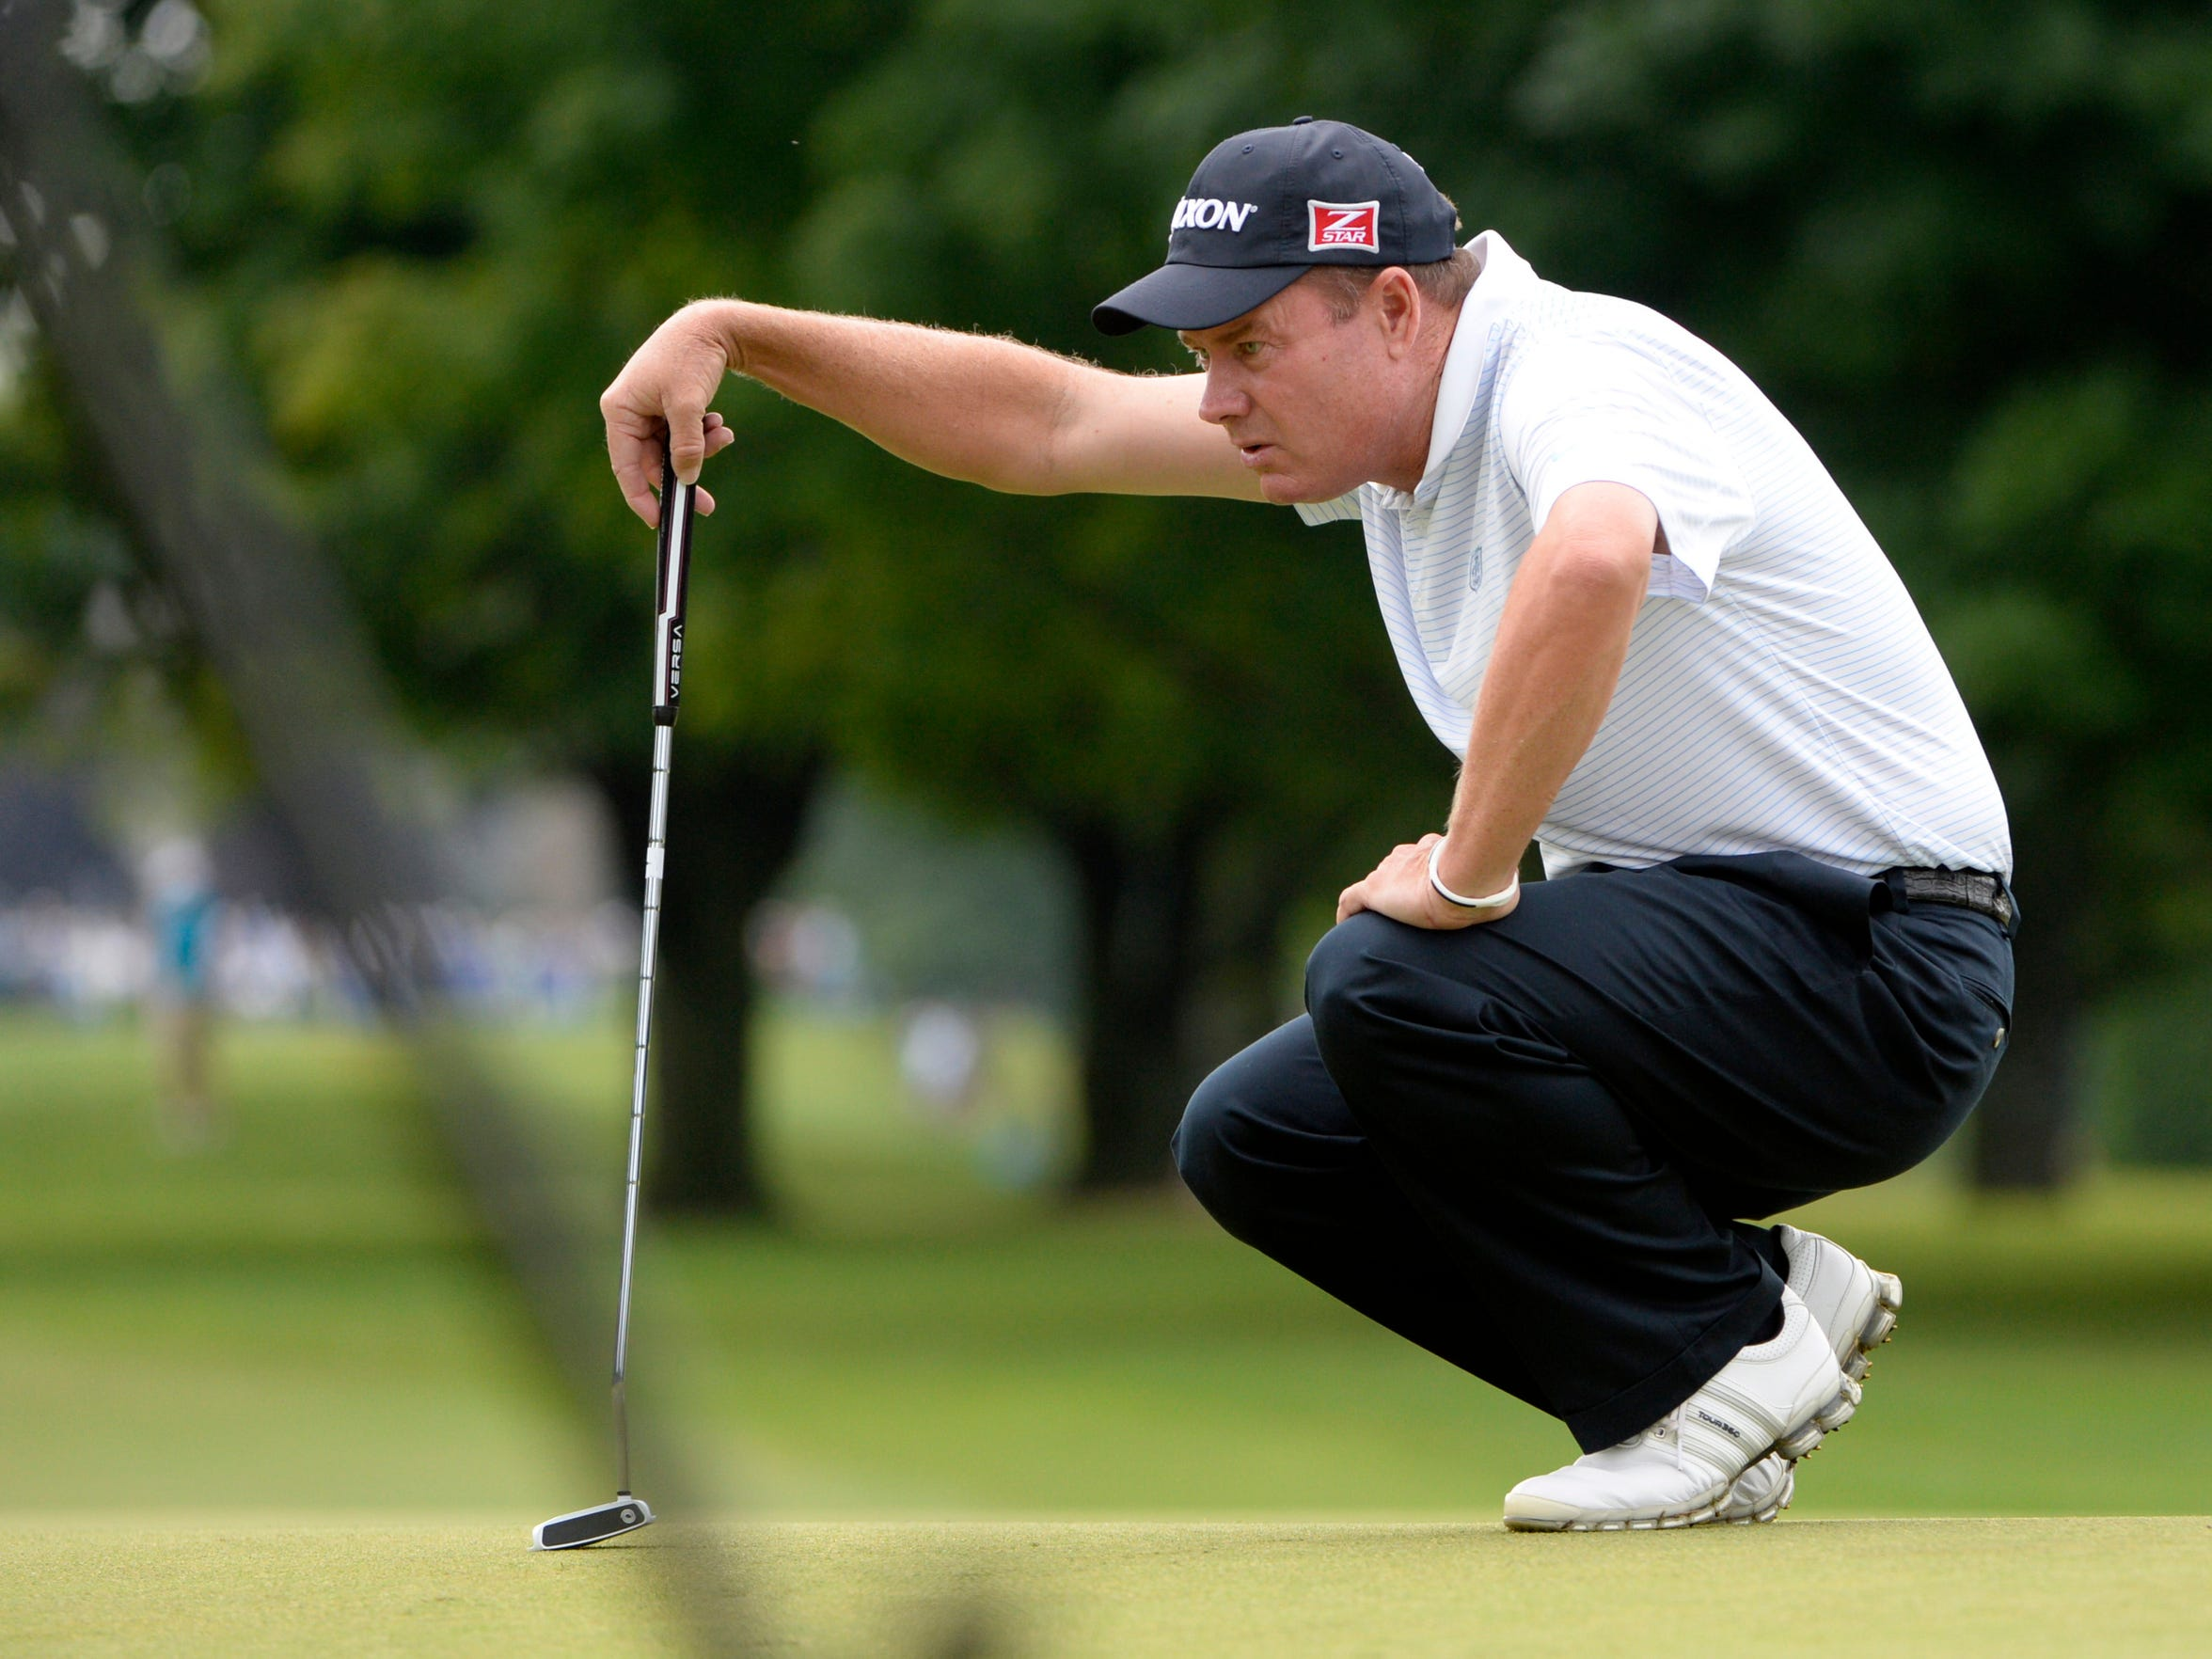 Joe Durant recorded an ace in the final round of last